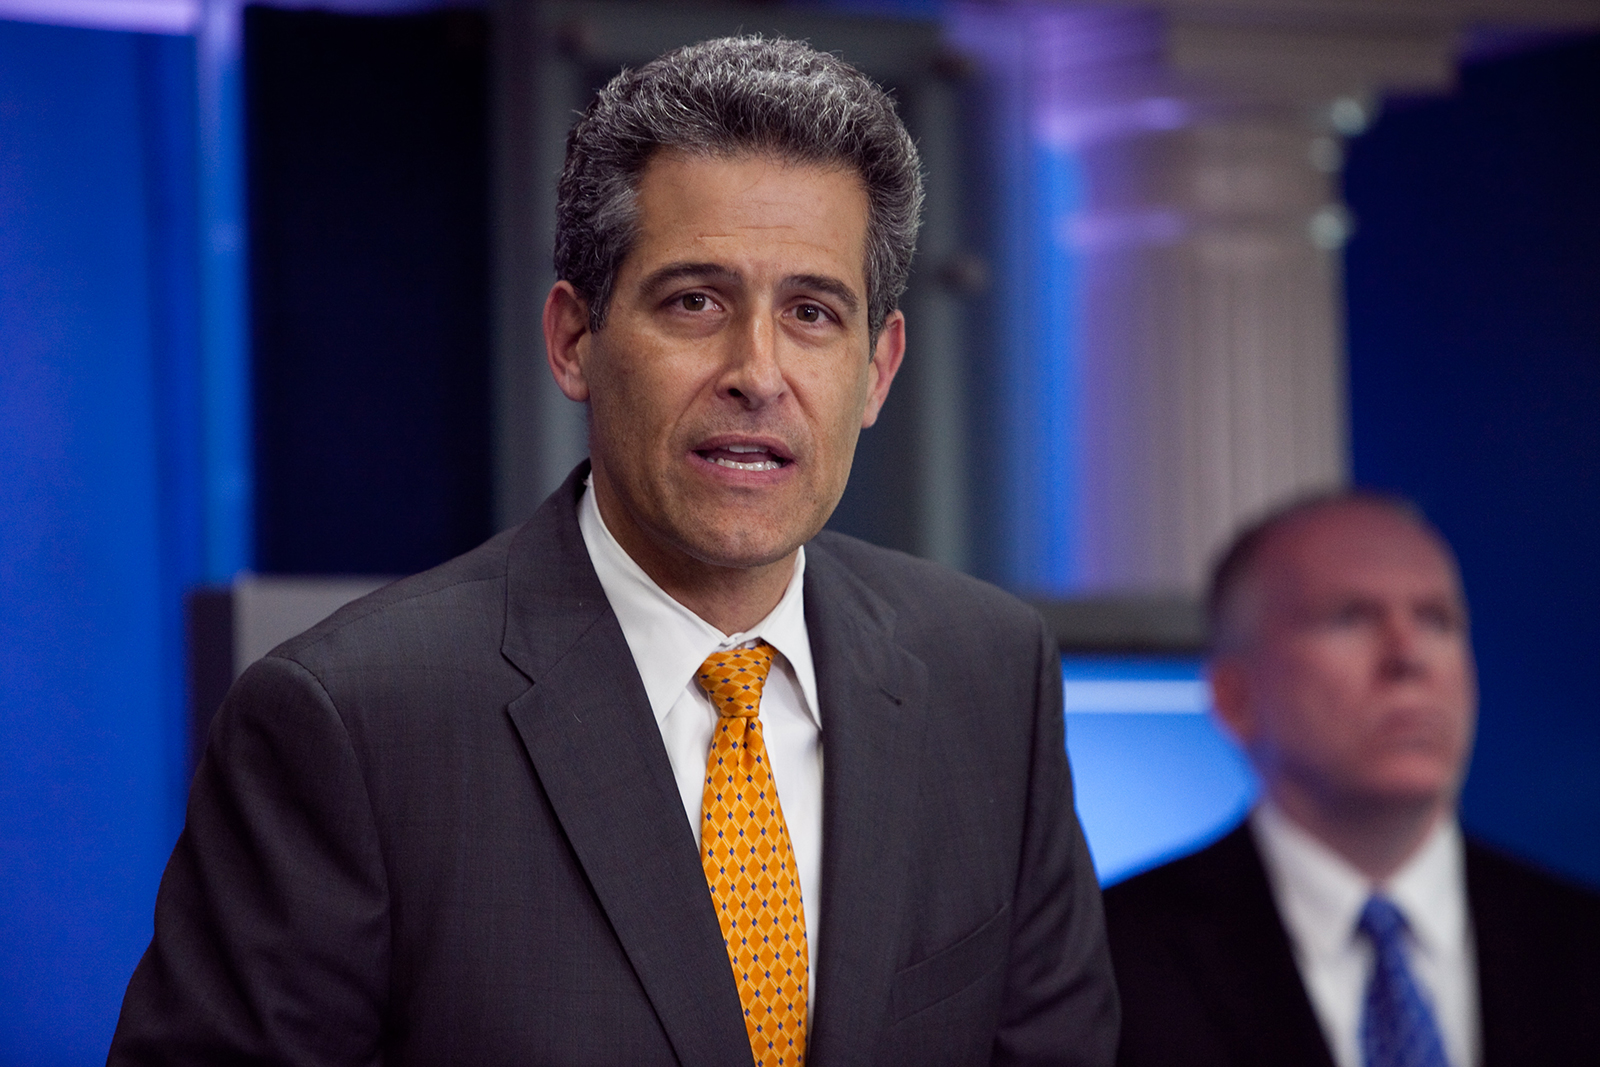 Dr. Richard Besser, then Acting Director, Centers for Disease Control and Prevention, briefs the media at the White House in Washington, DC, on April 26, 2009.